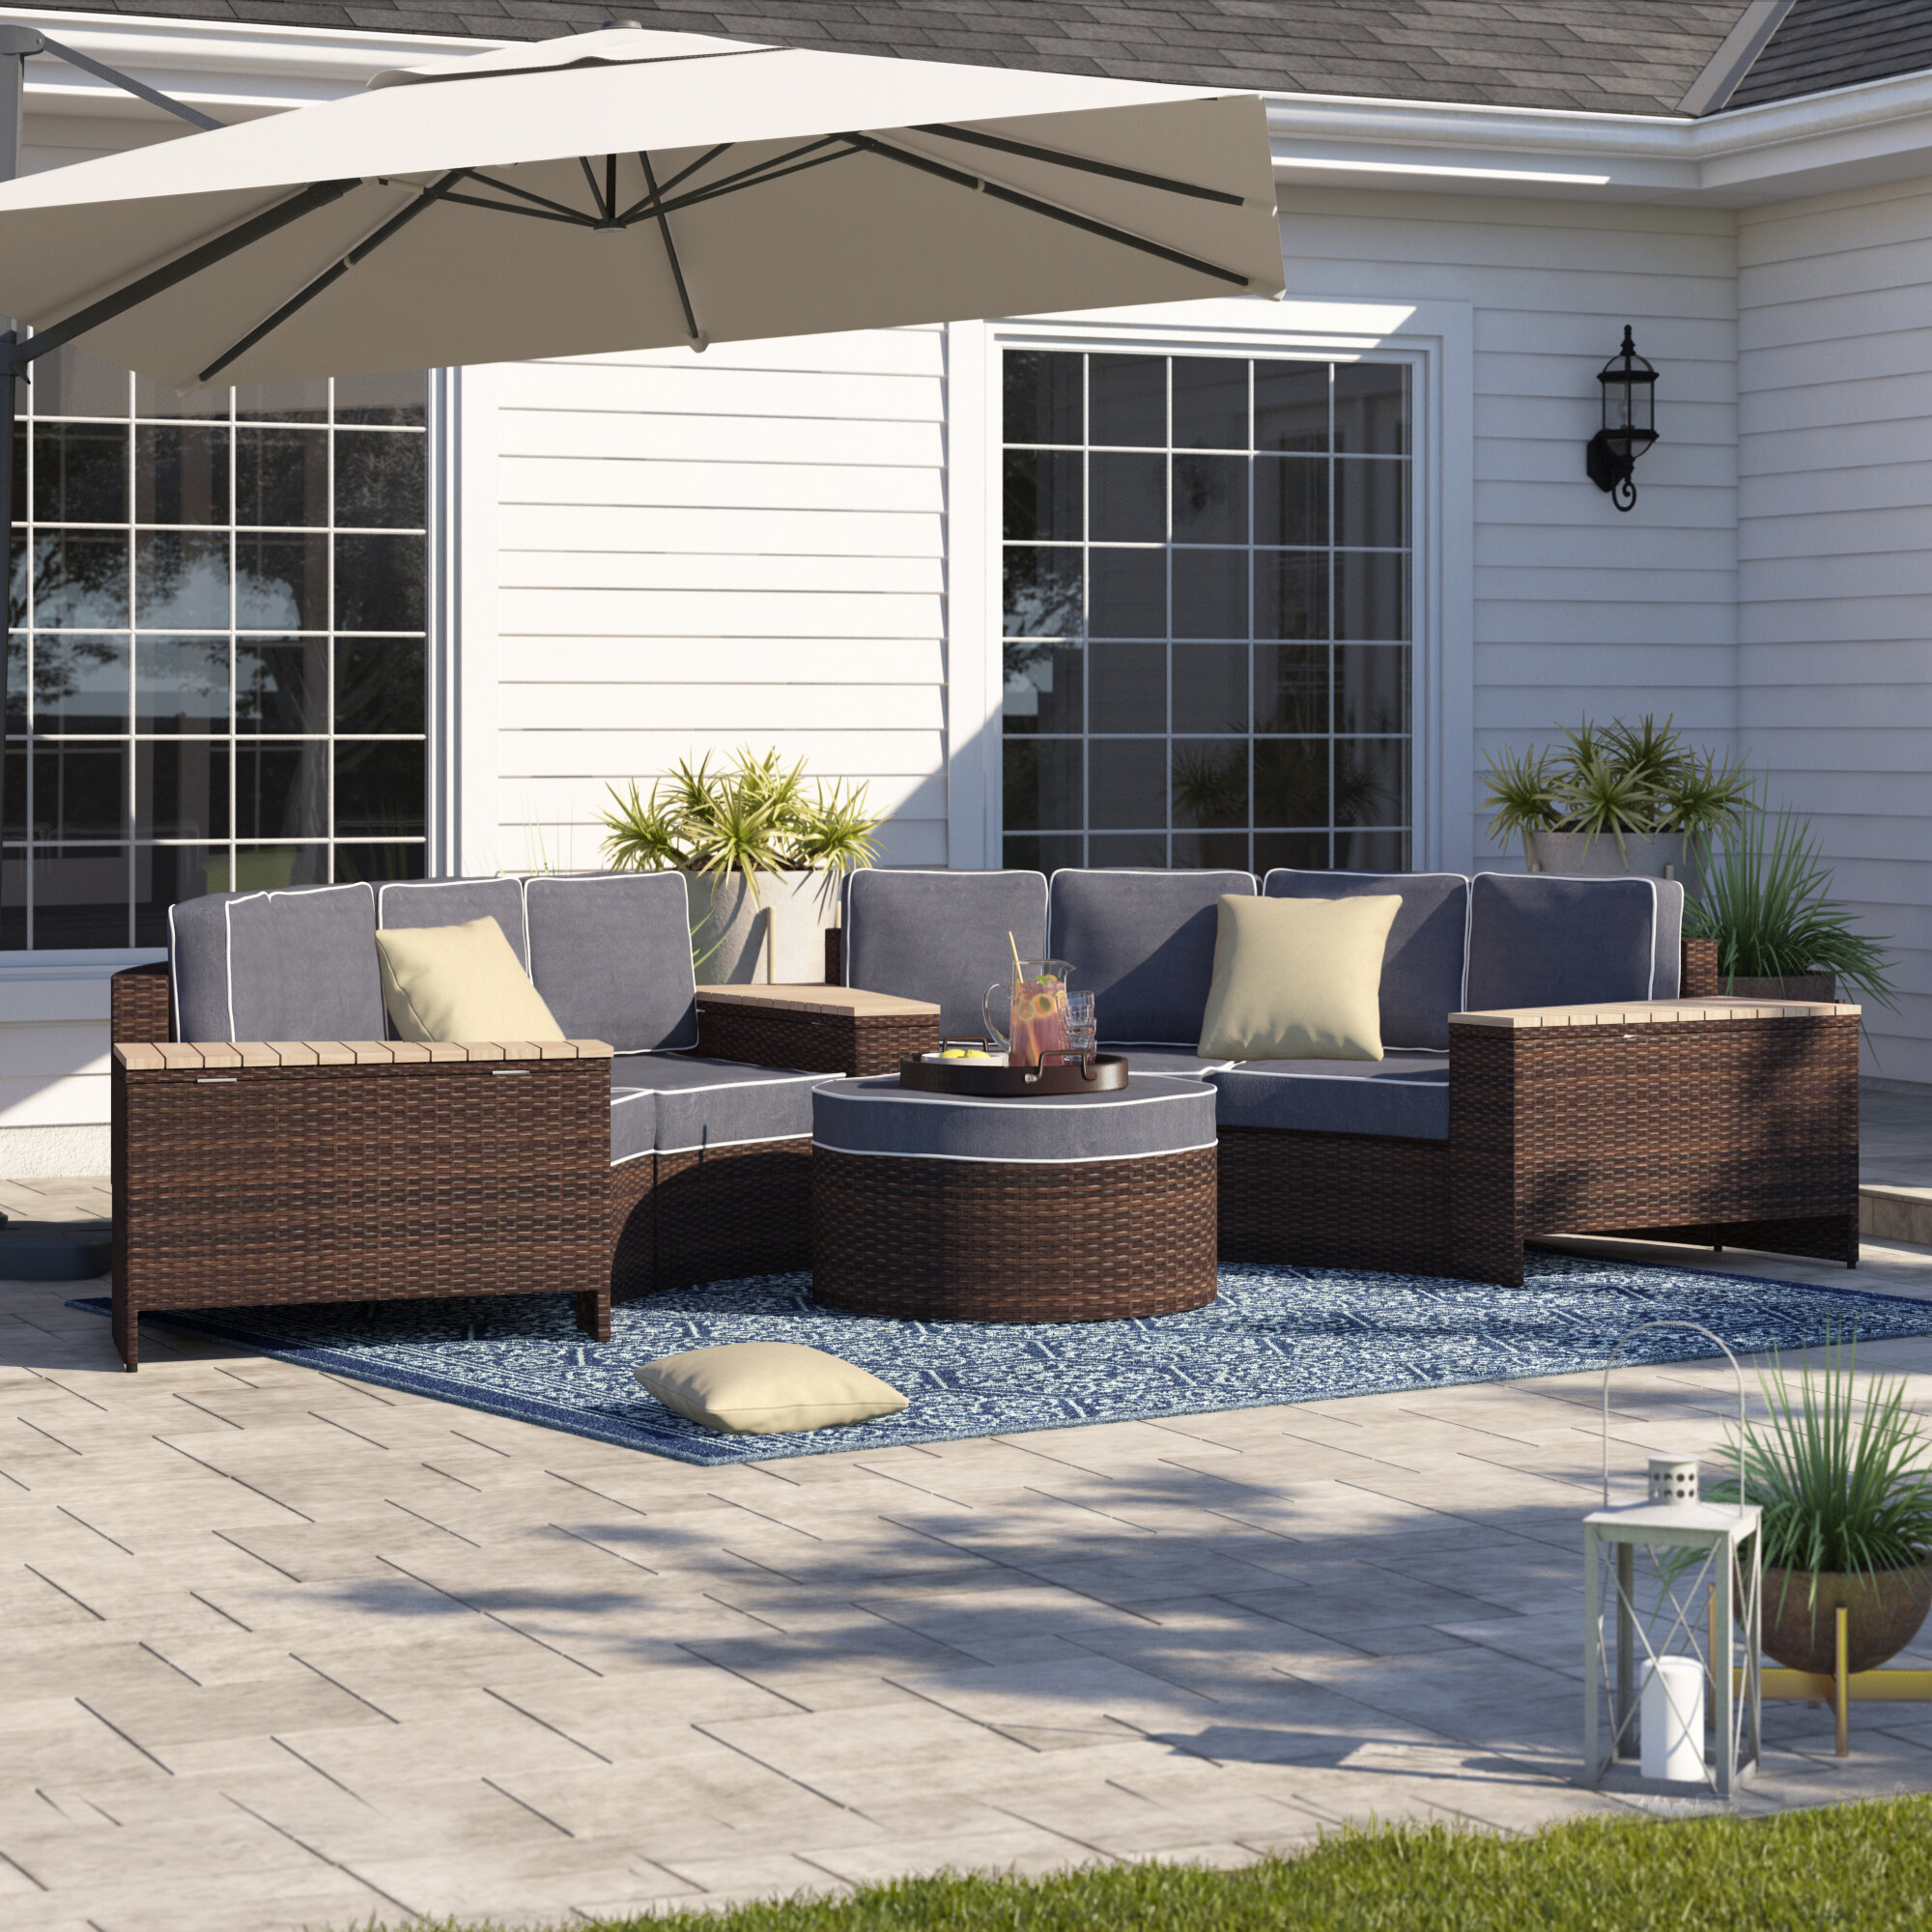 Best Price Bermuda 8 Piece Rattan Sectional Seating Group With Cushions Furniture Online